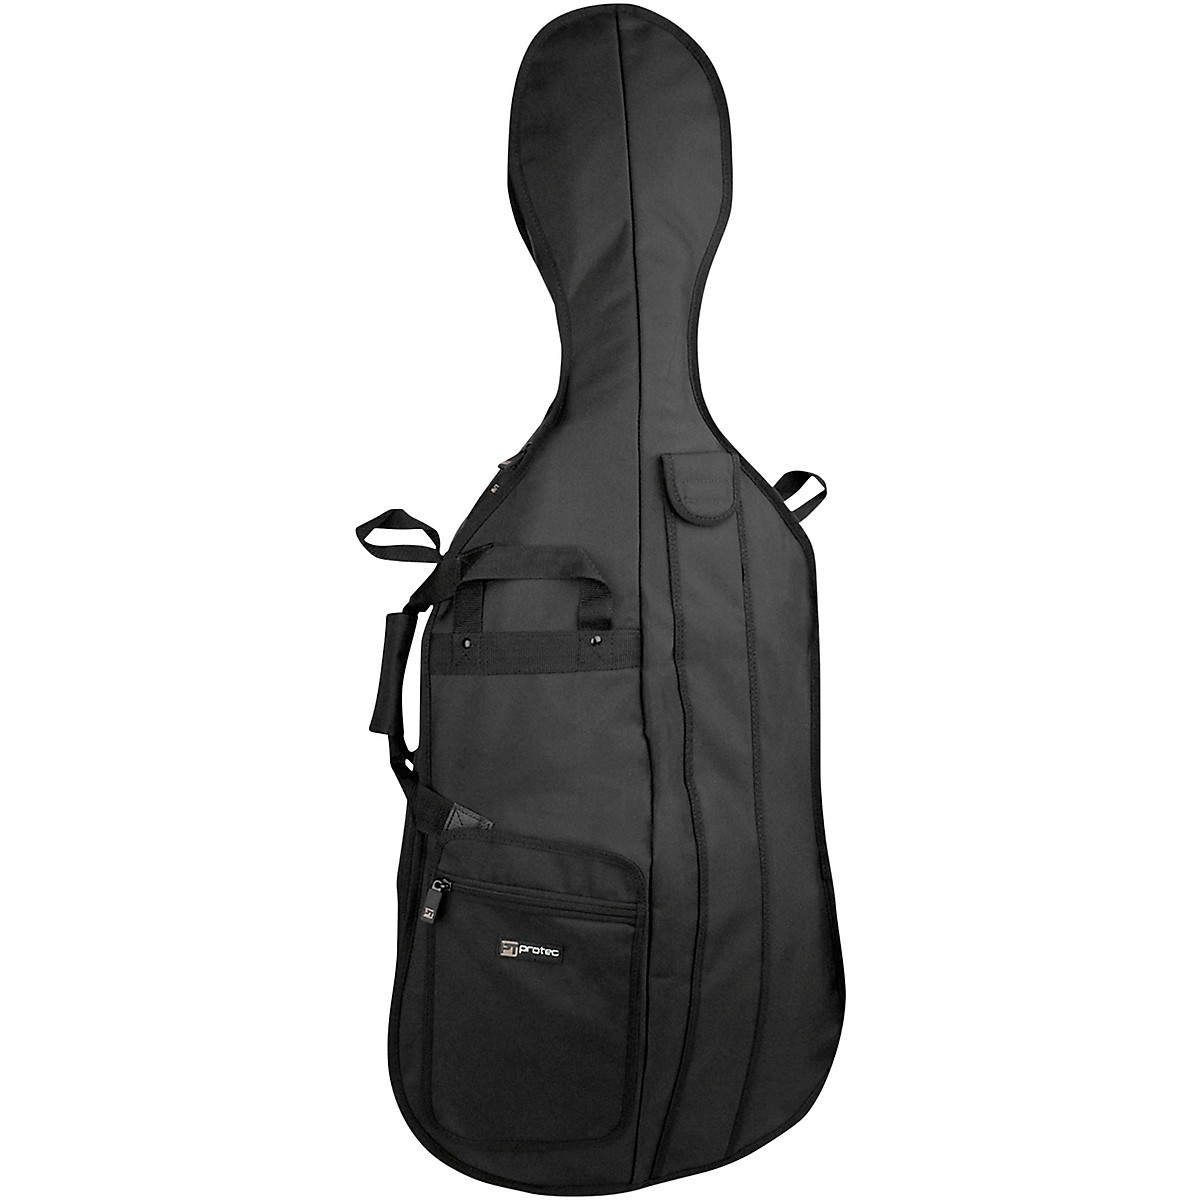 Protec 4/4 Cello Gig Bag - Silver Series